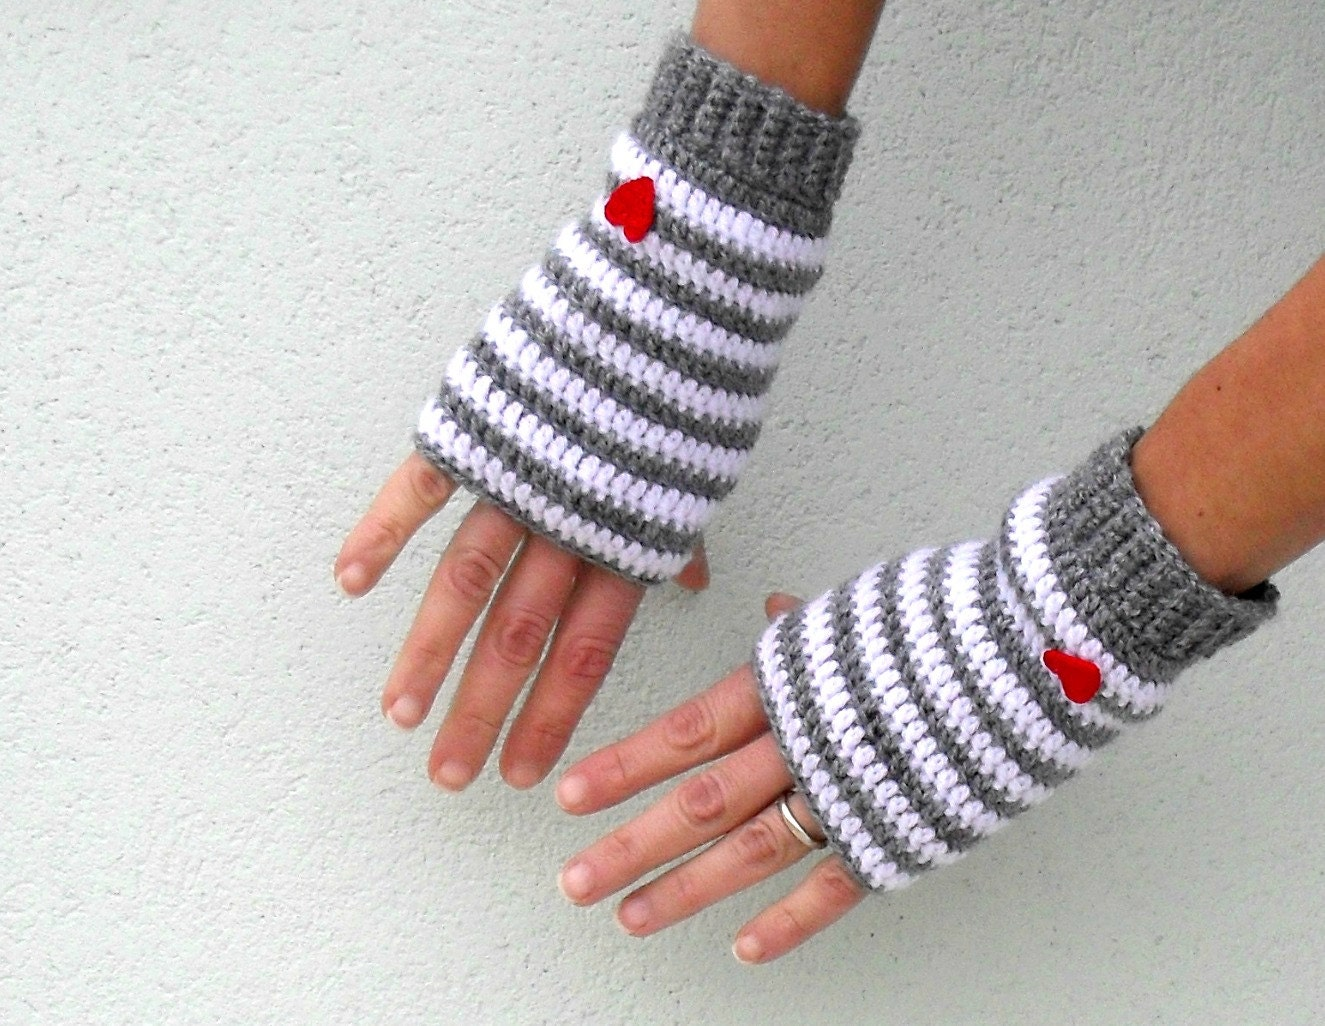 Free Crochet Patterns For Fingerless Gloves And Mitts : Crochet fingerless gloves mittens PDF Pattern Little Heart